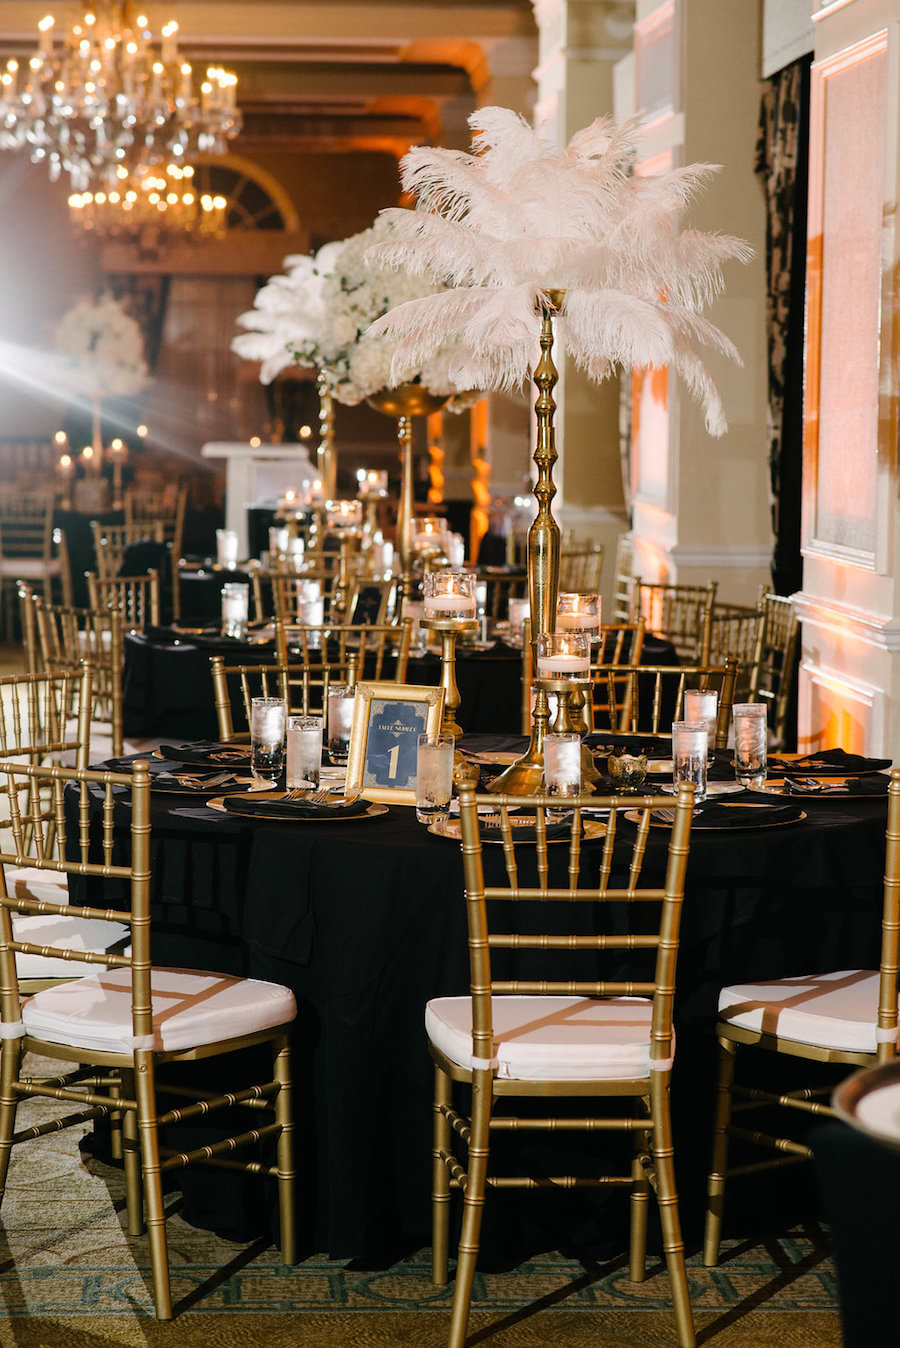 Ivory, Black and Gold Wedding Reception with Tall White Feather Centerpieces and Gold Chiavari Chairs with Black Linens   St. Petersburg Wedding Venue The Don CeSar   Tampa Bay Wedding Photographer Jonathan Fanning Studio and Gallery   A Chair Affair